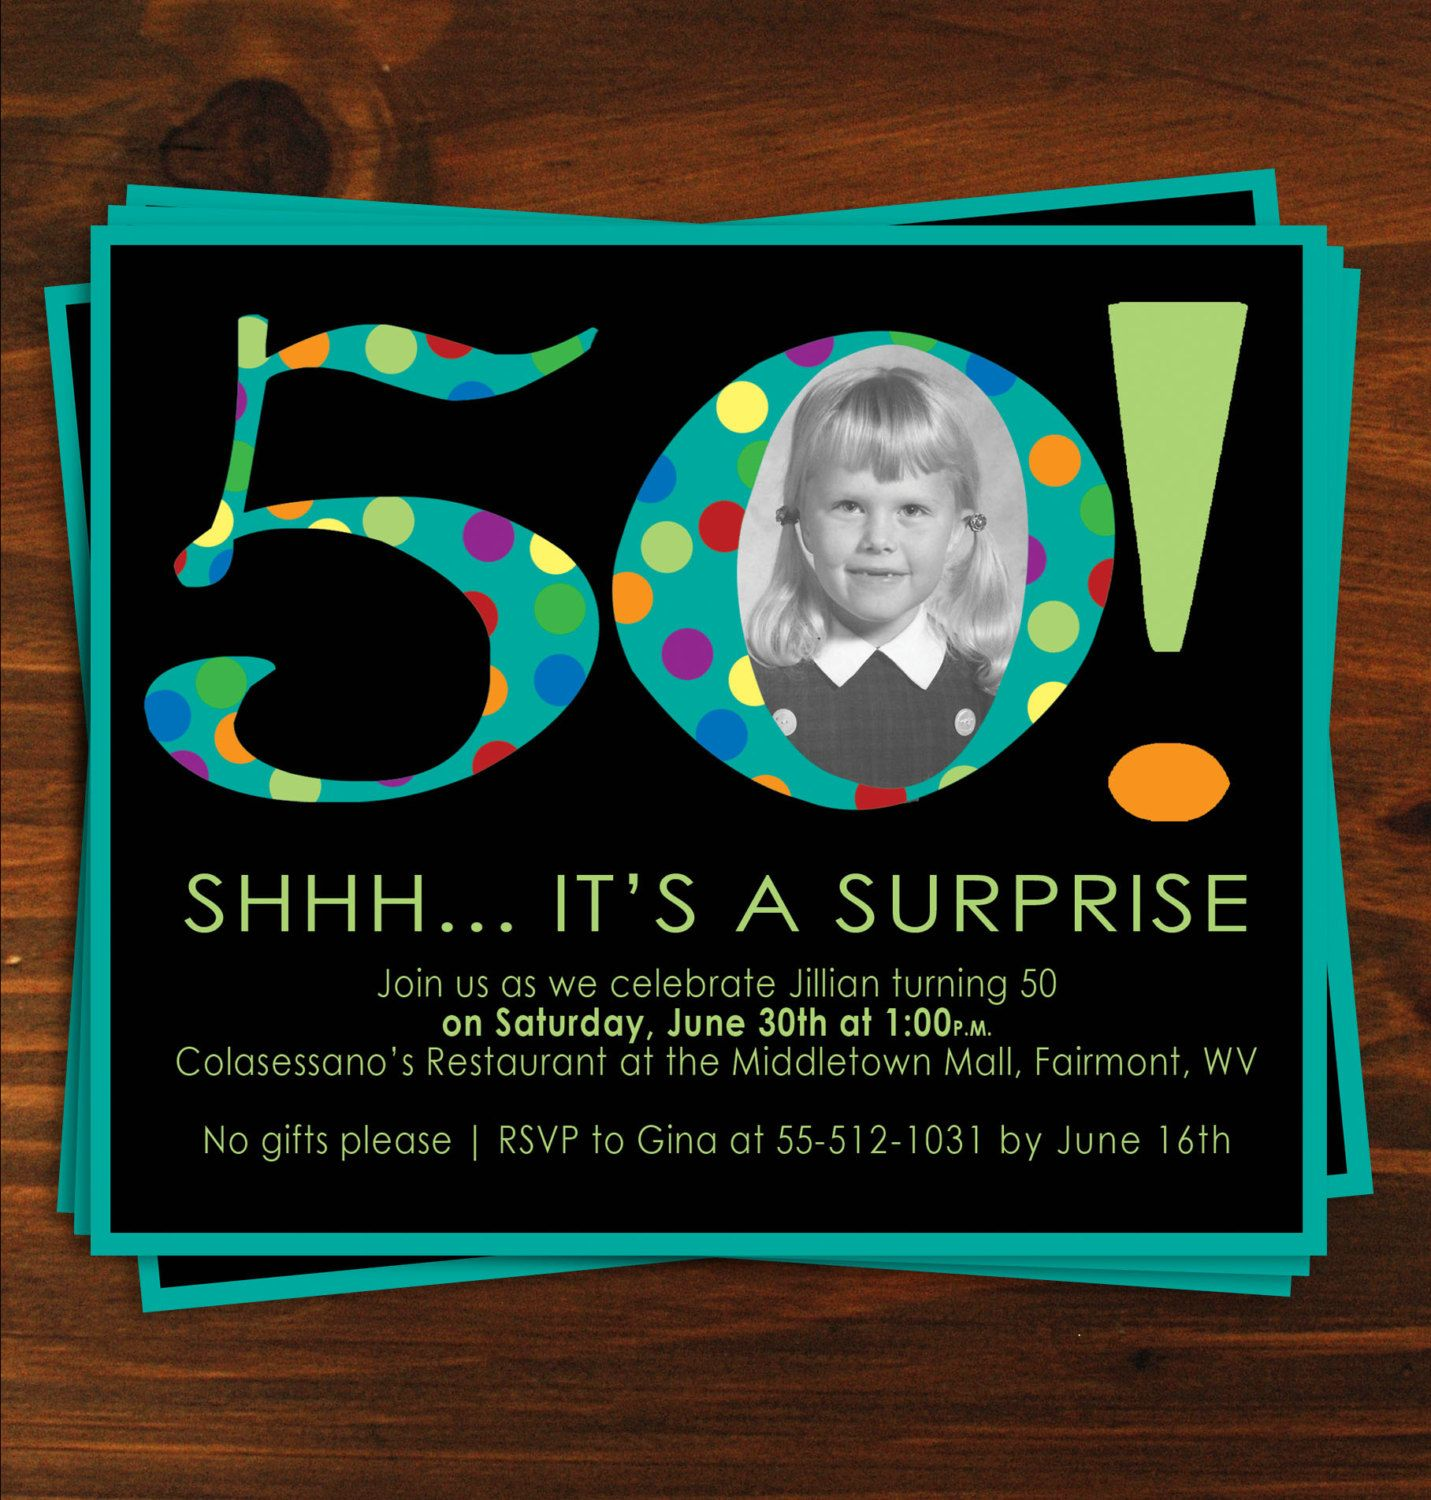 50th birthday party invitations ideas new invitations pinterest 50th birthday party invitations ideas filmwisefo